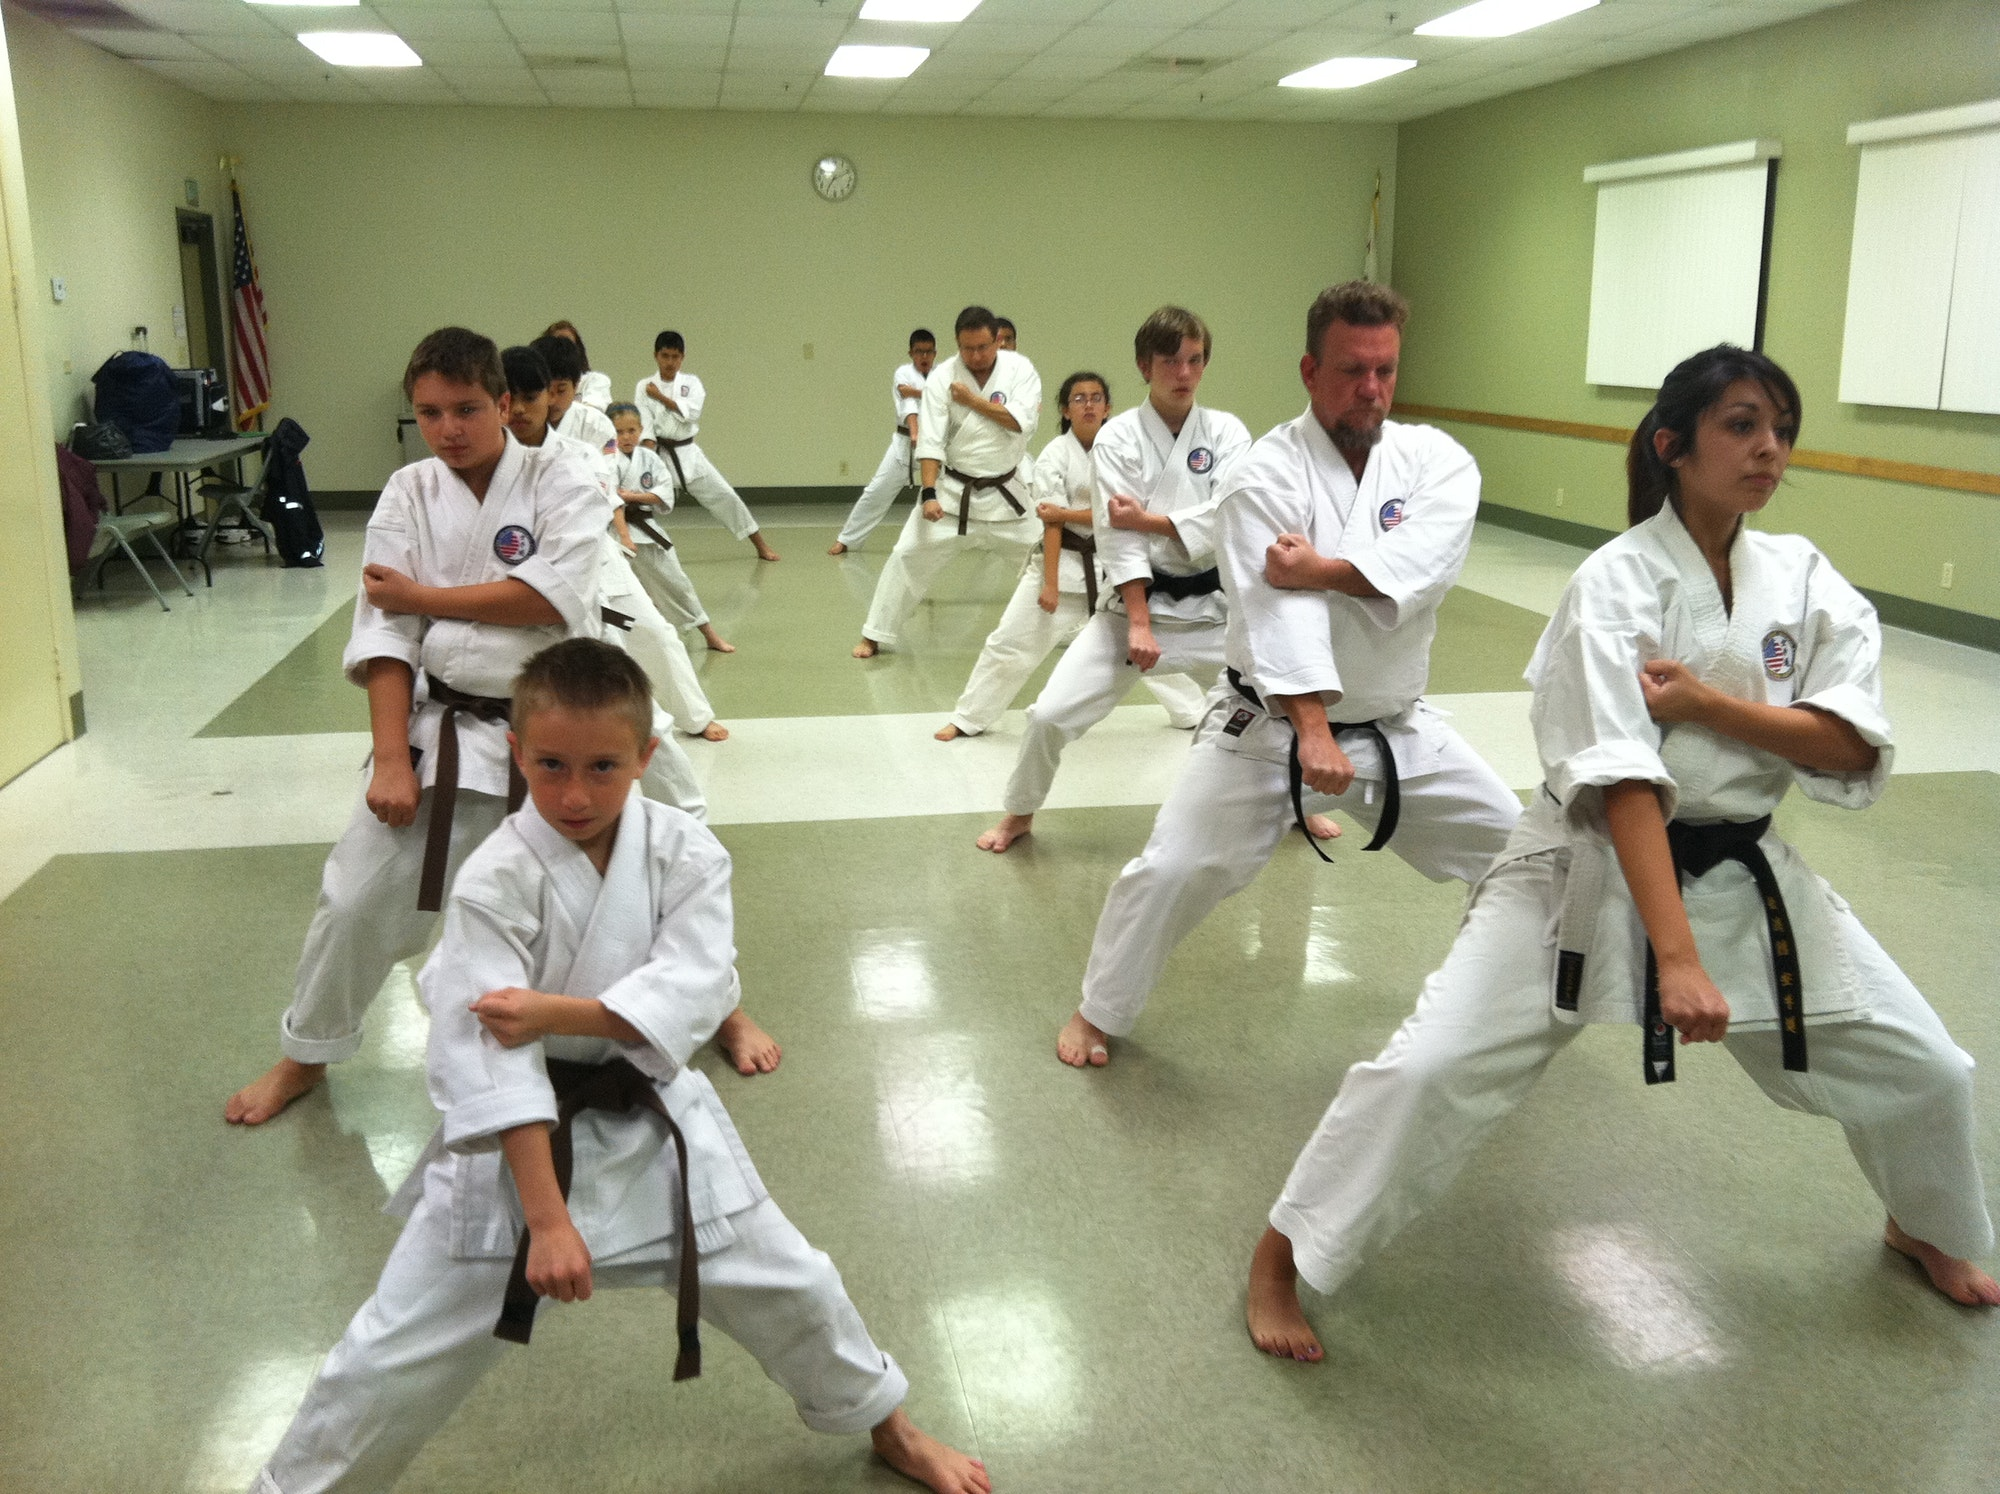 Older aged martial arts class in action